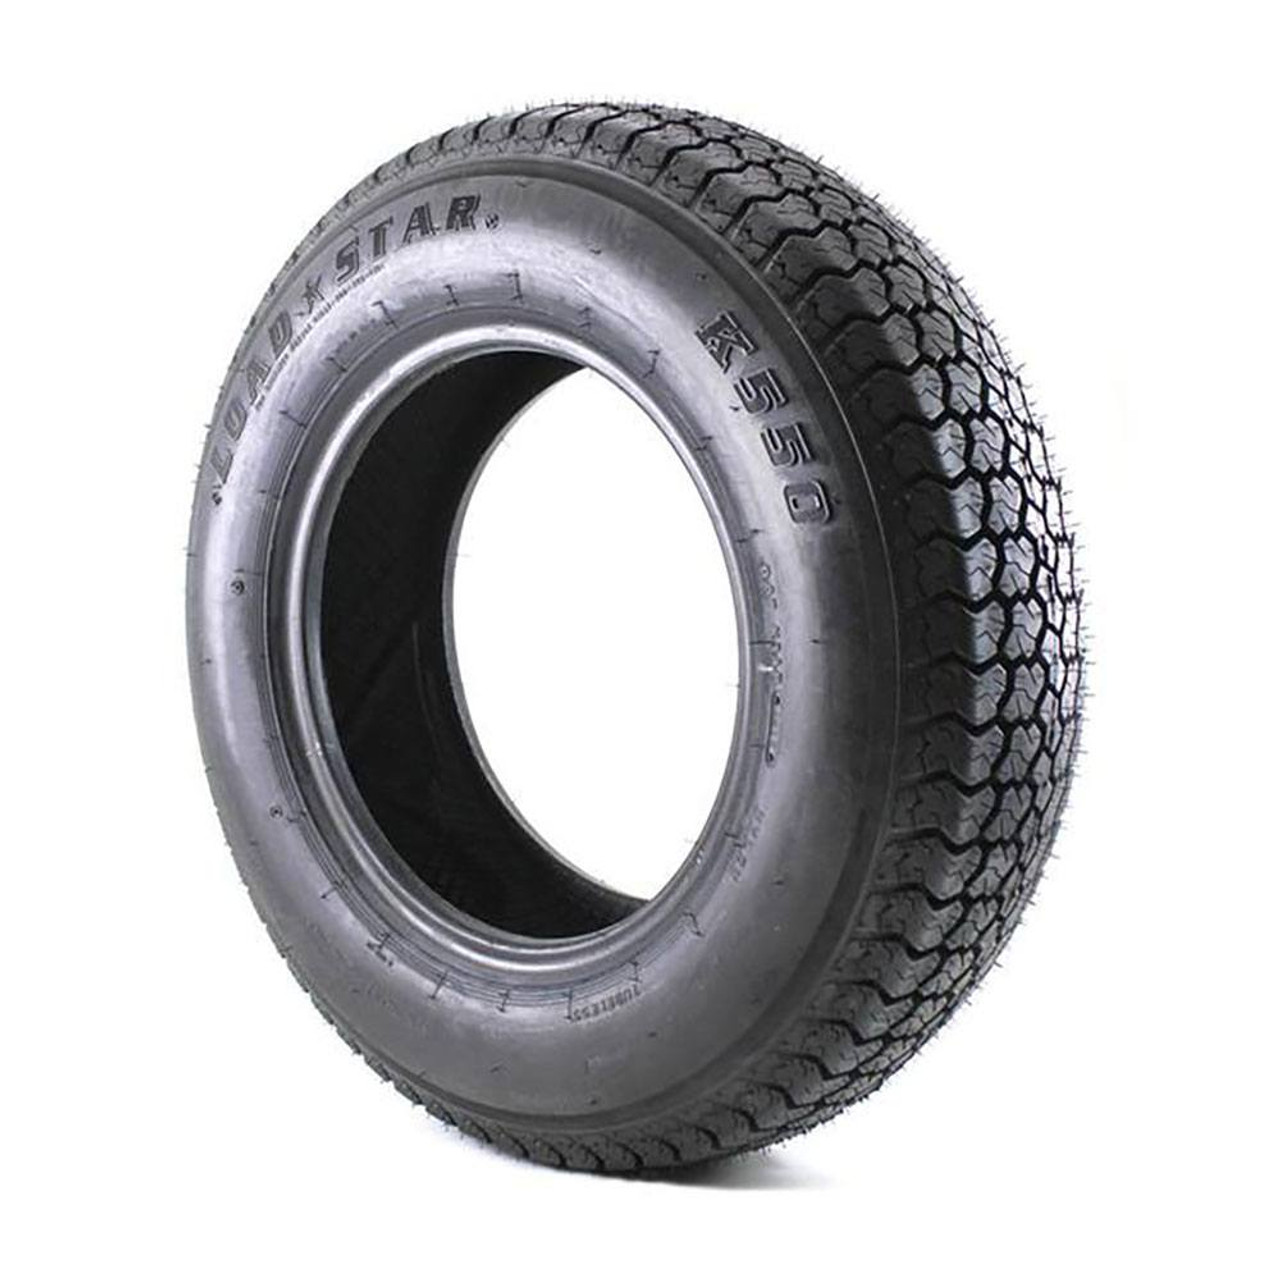 ST205/75D14 Load Range C Bias Ply Trailer Tire - Kenda Loadstar